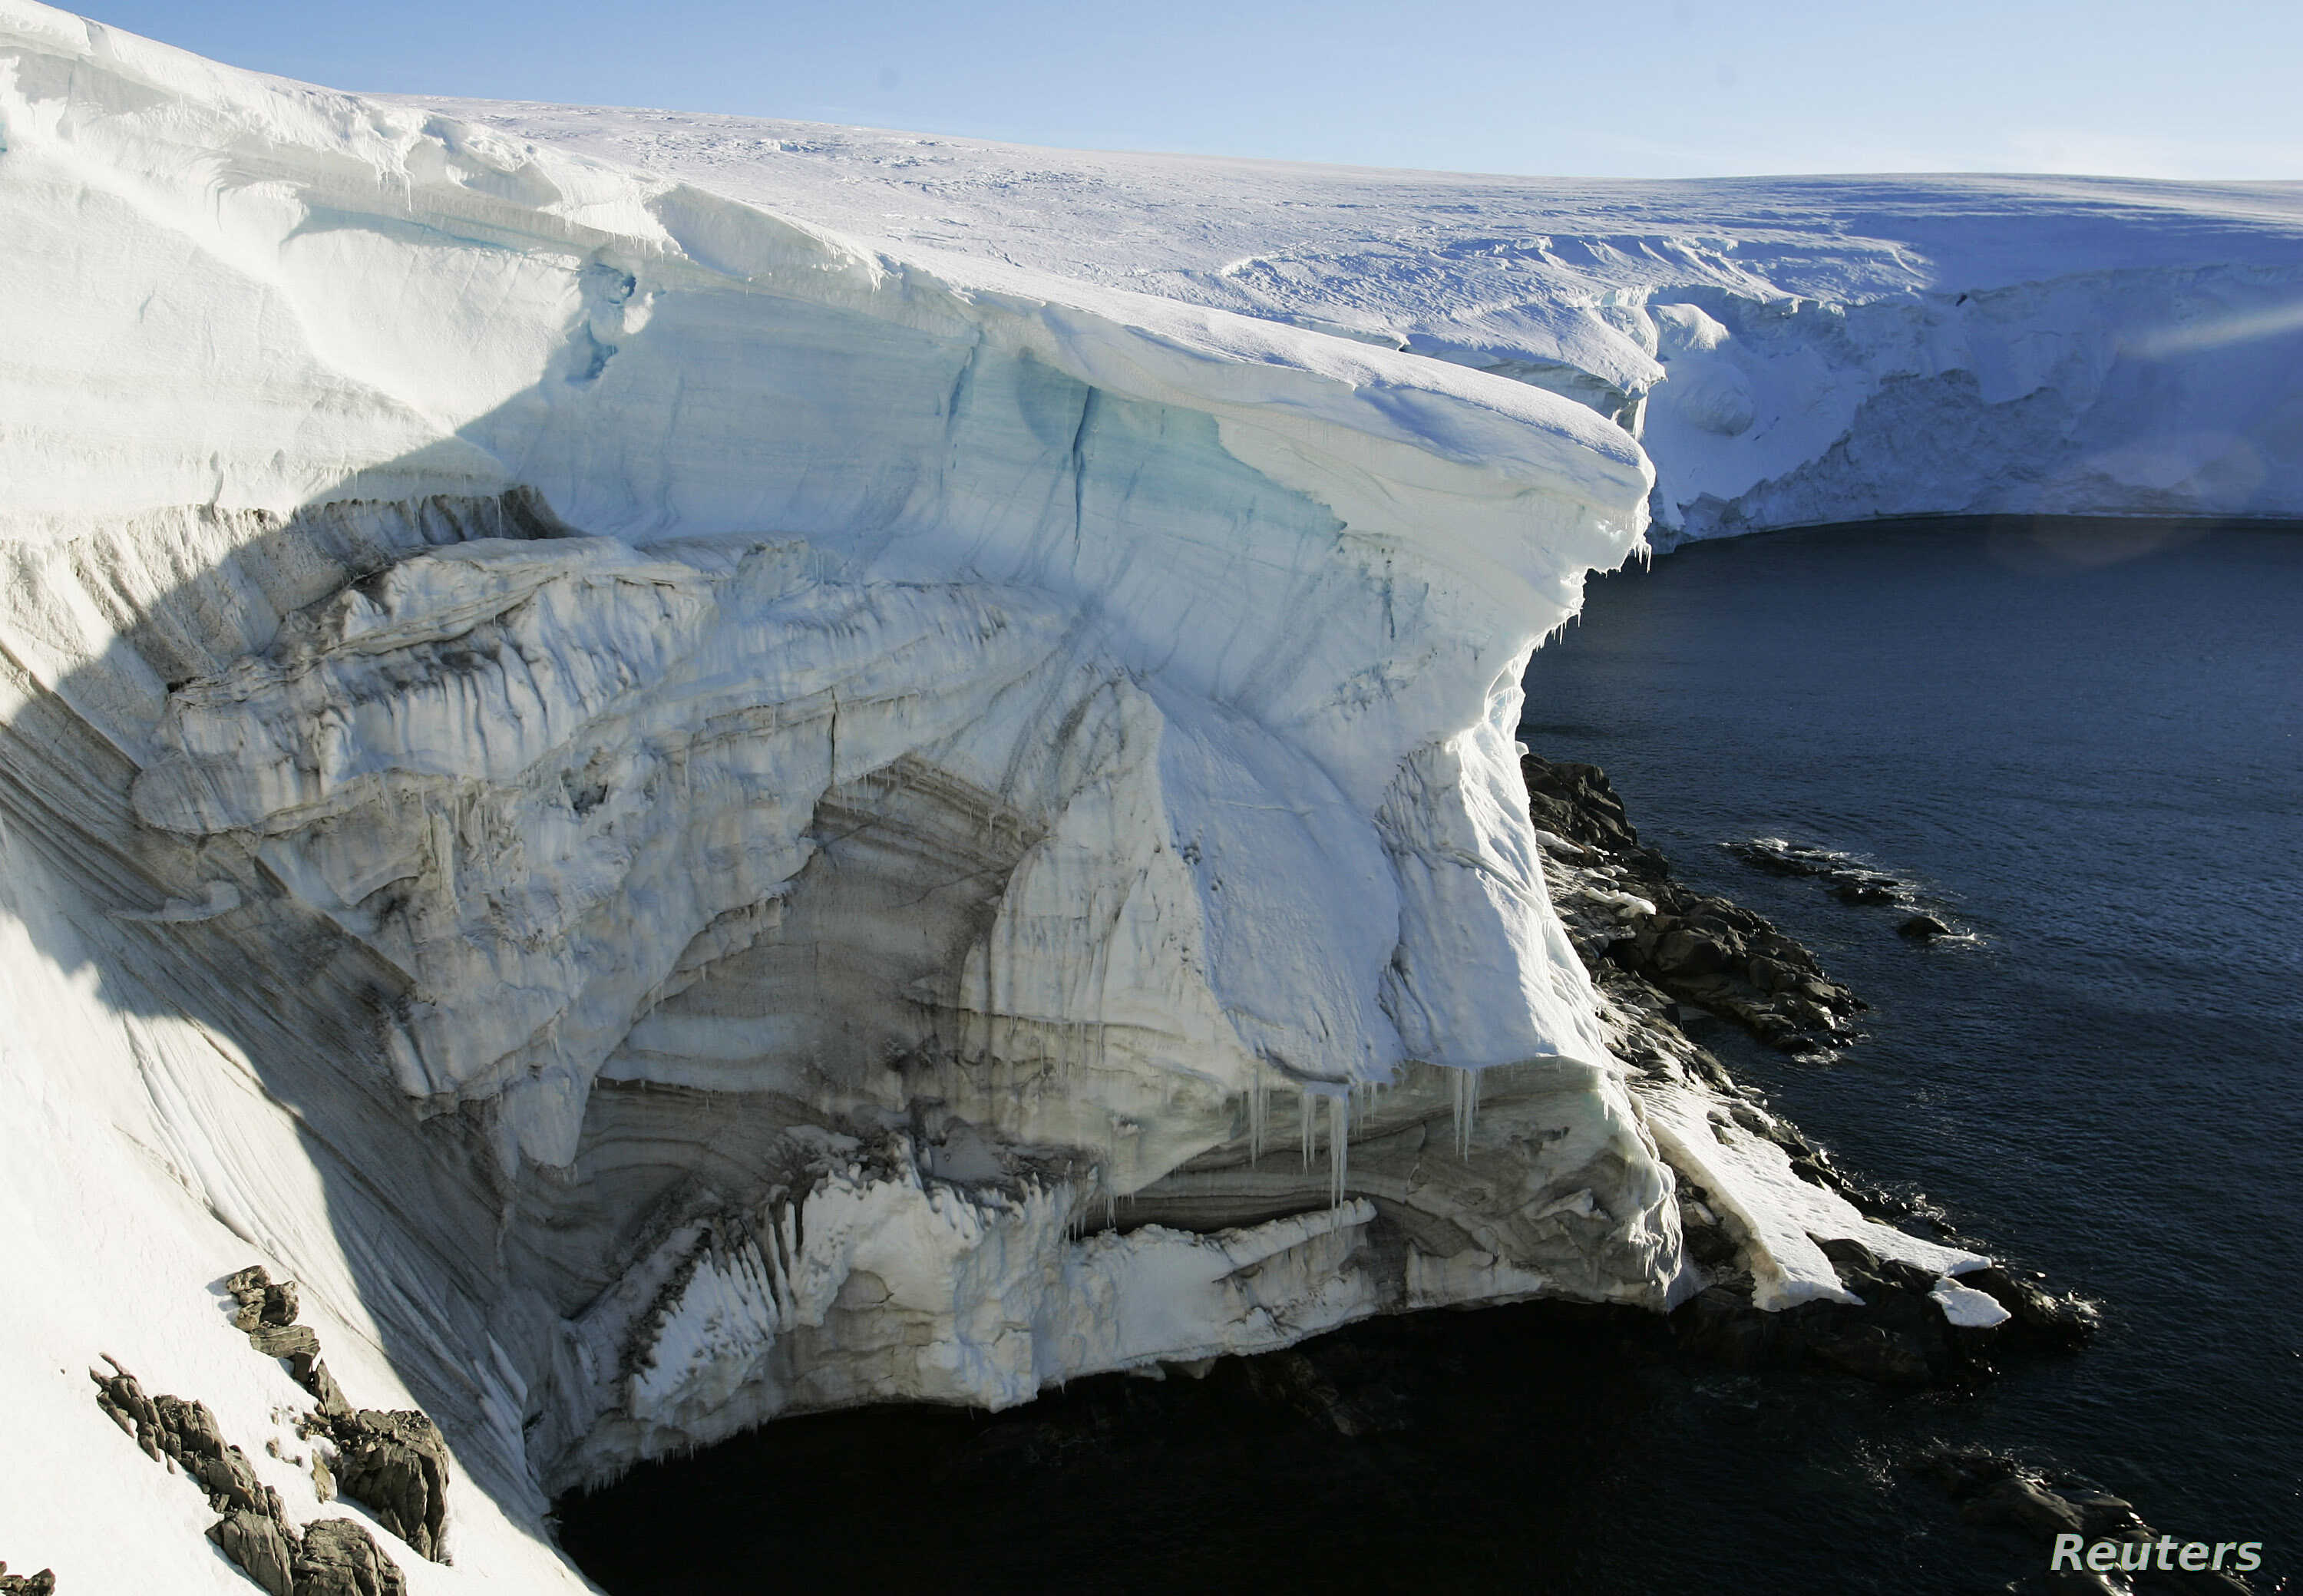 A record-size hole in the ozone layer has appeared over Antarctica. Shown here is a cliff face at Landsend, on the coast of Cape Denison.